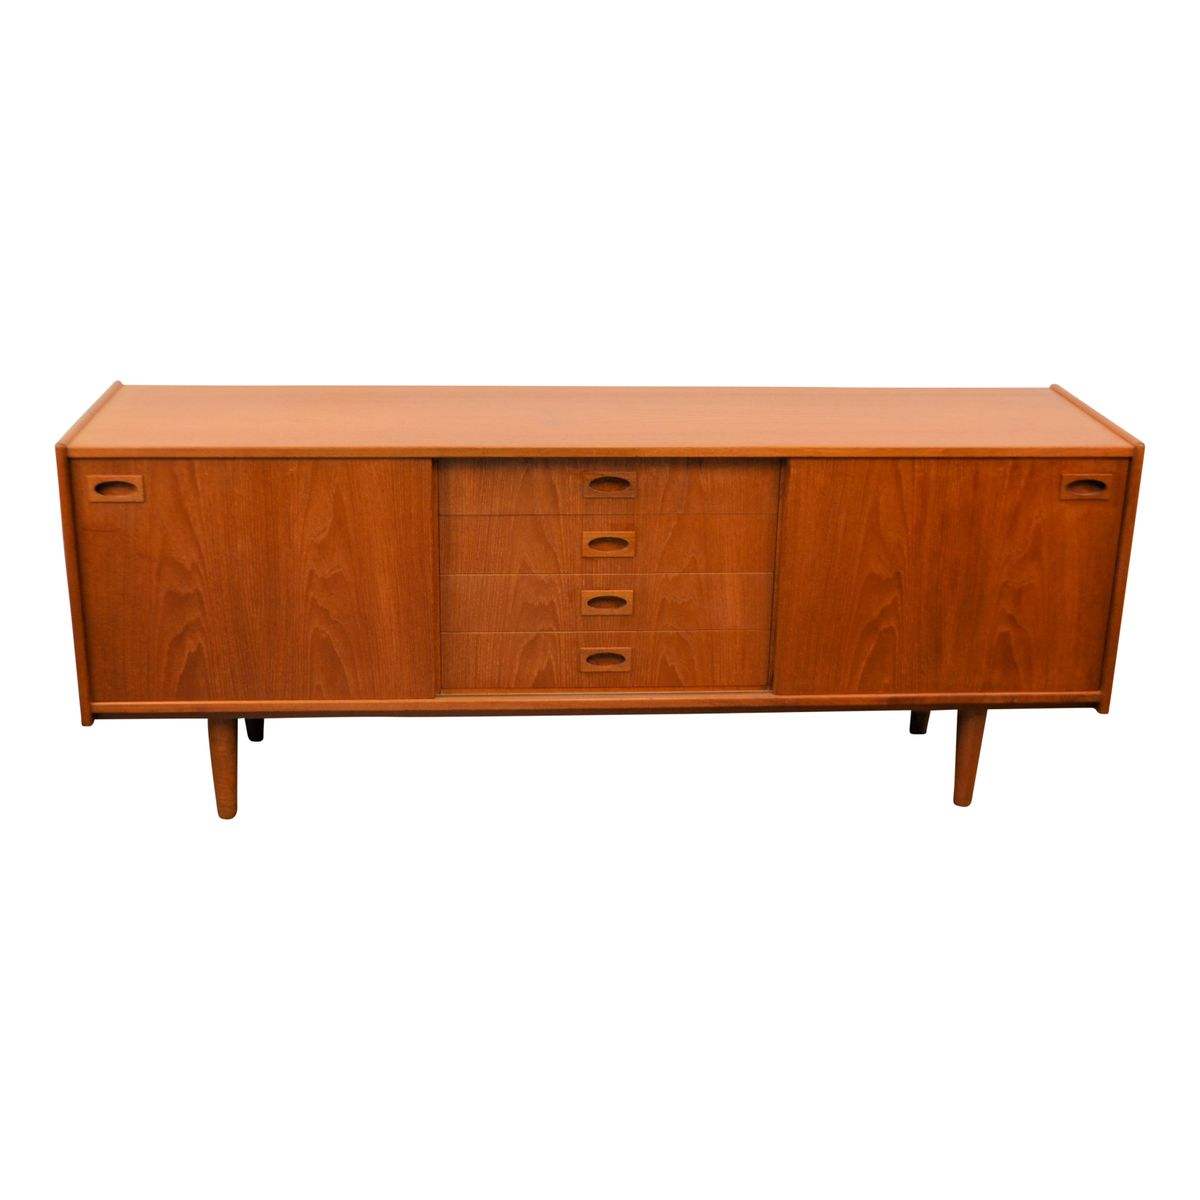 d nisches vintage teak sideboard von mogens kold bei. Black Bedroom Furniture Sets. Home Design Ideas